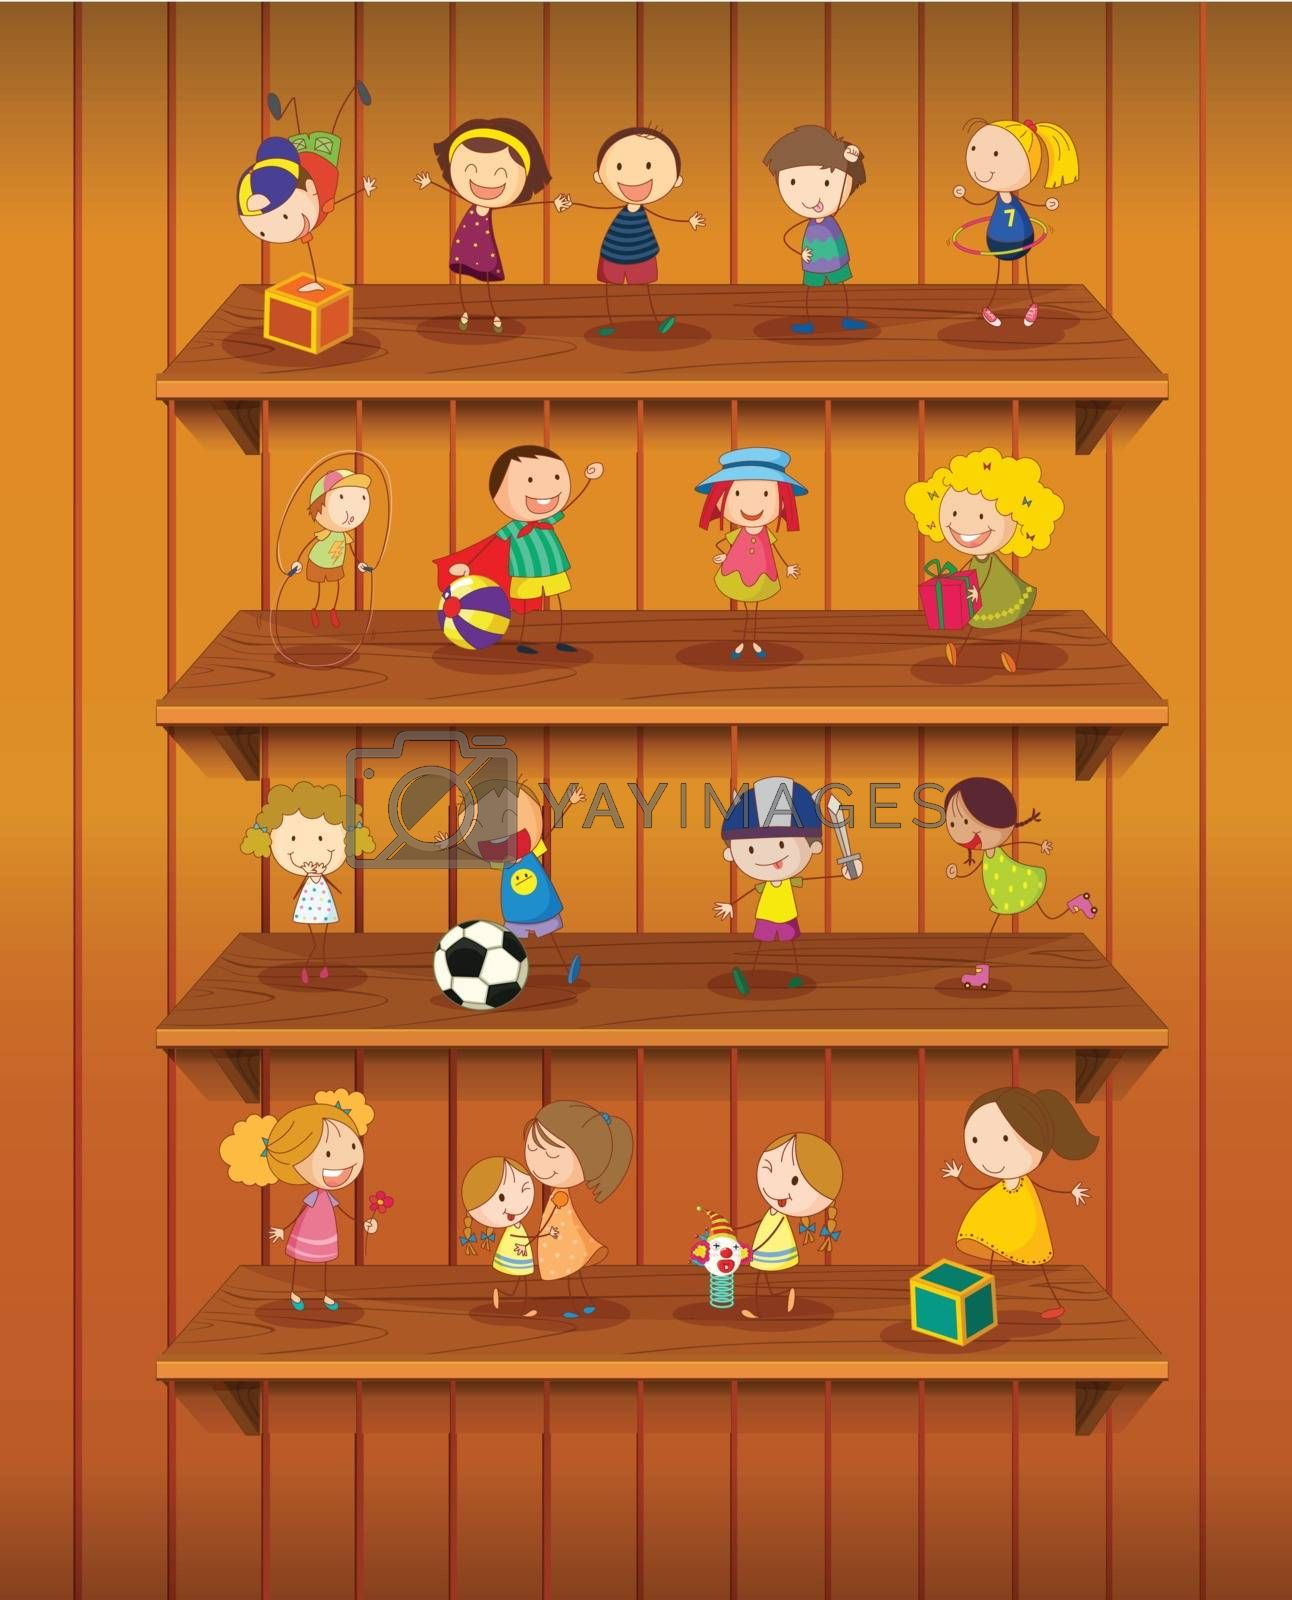 Illustration of toys playing on shelves